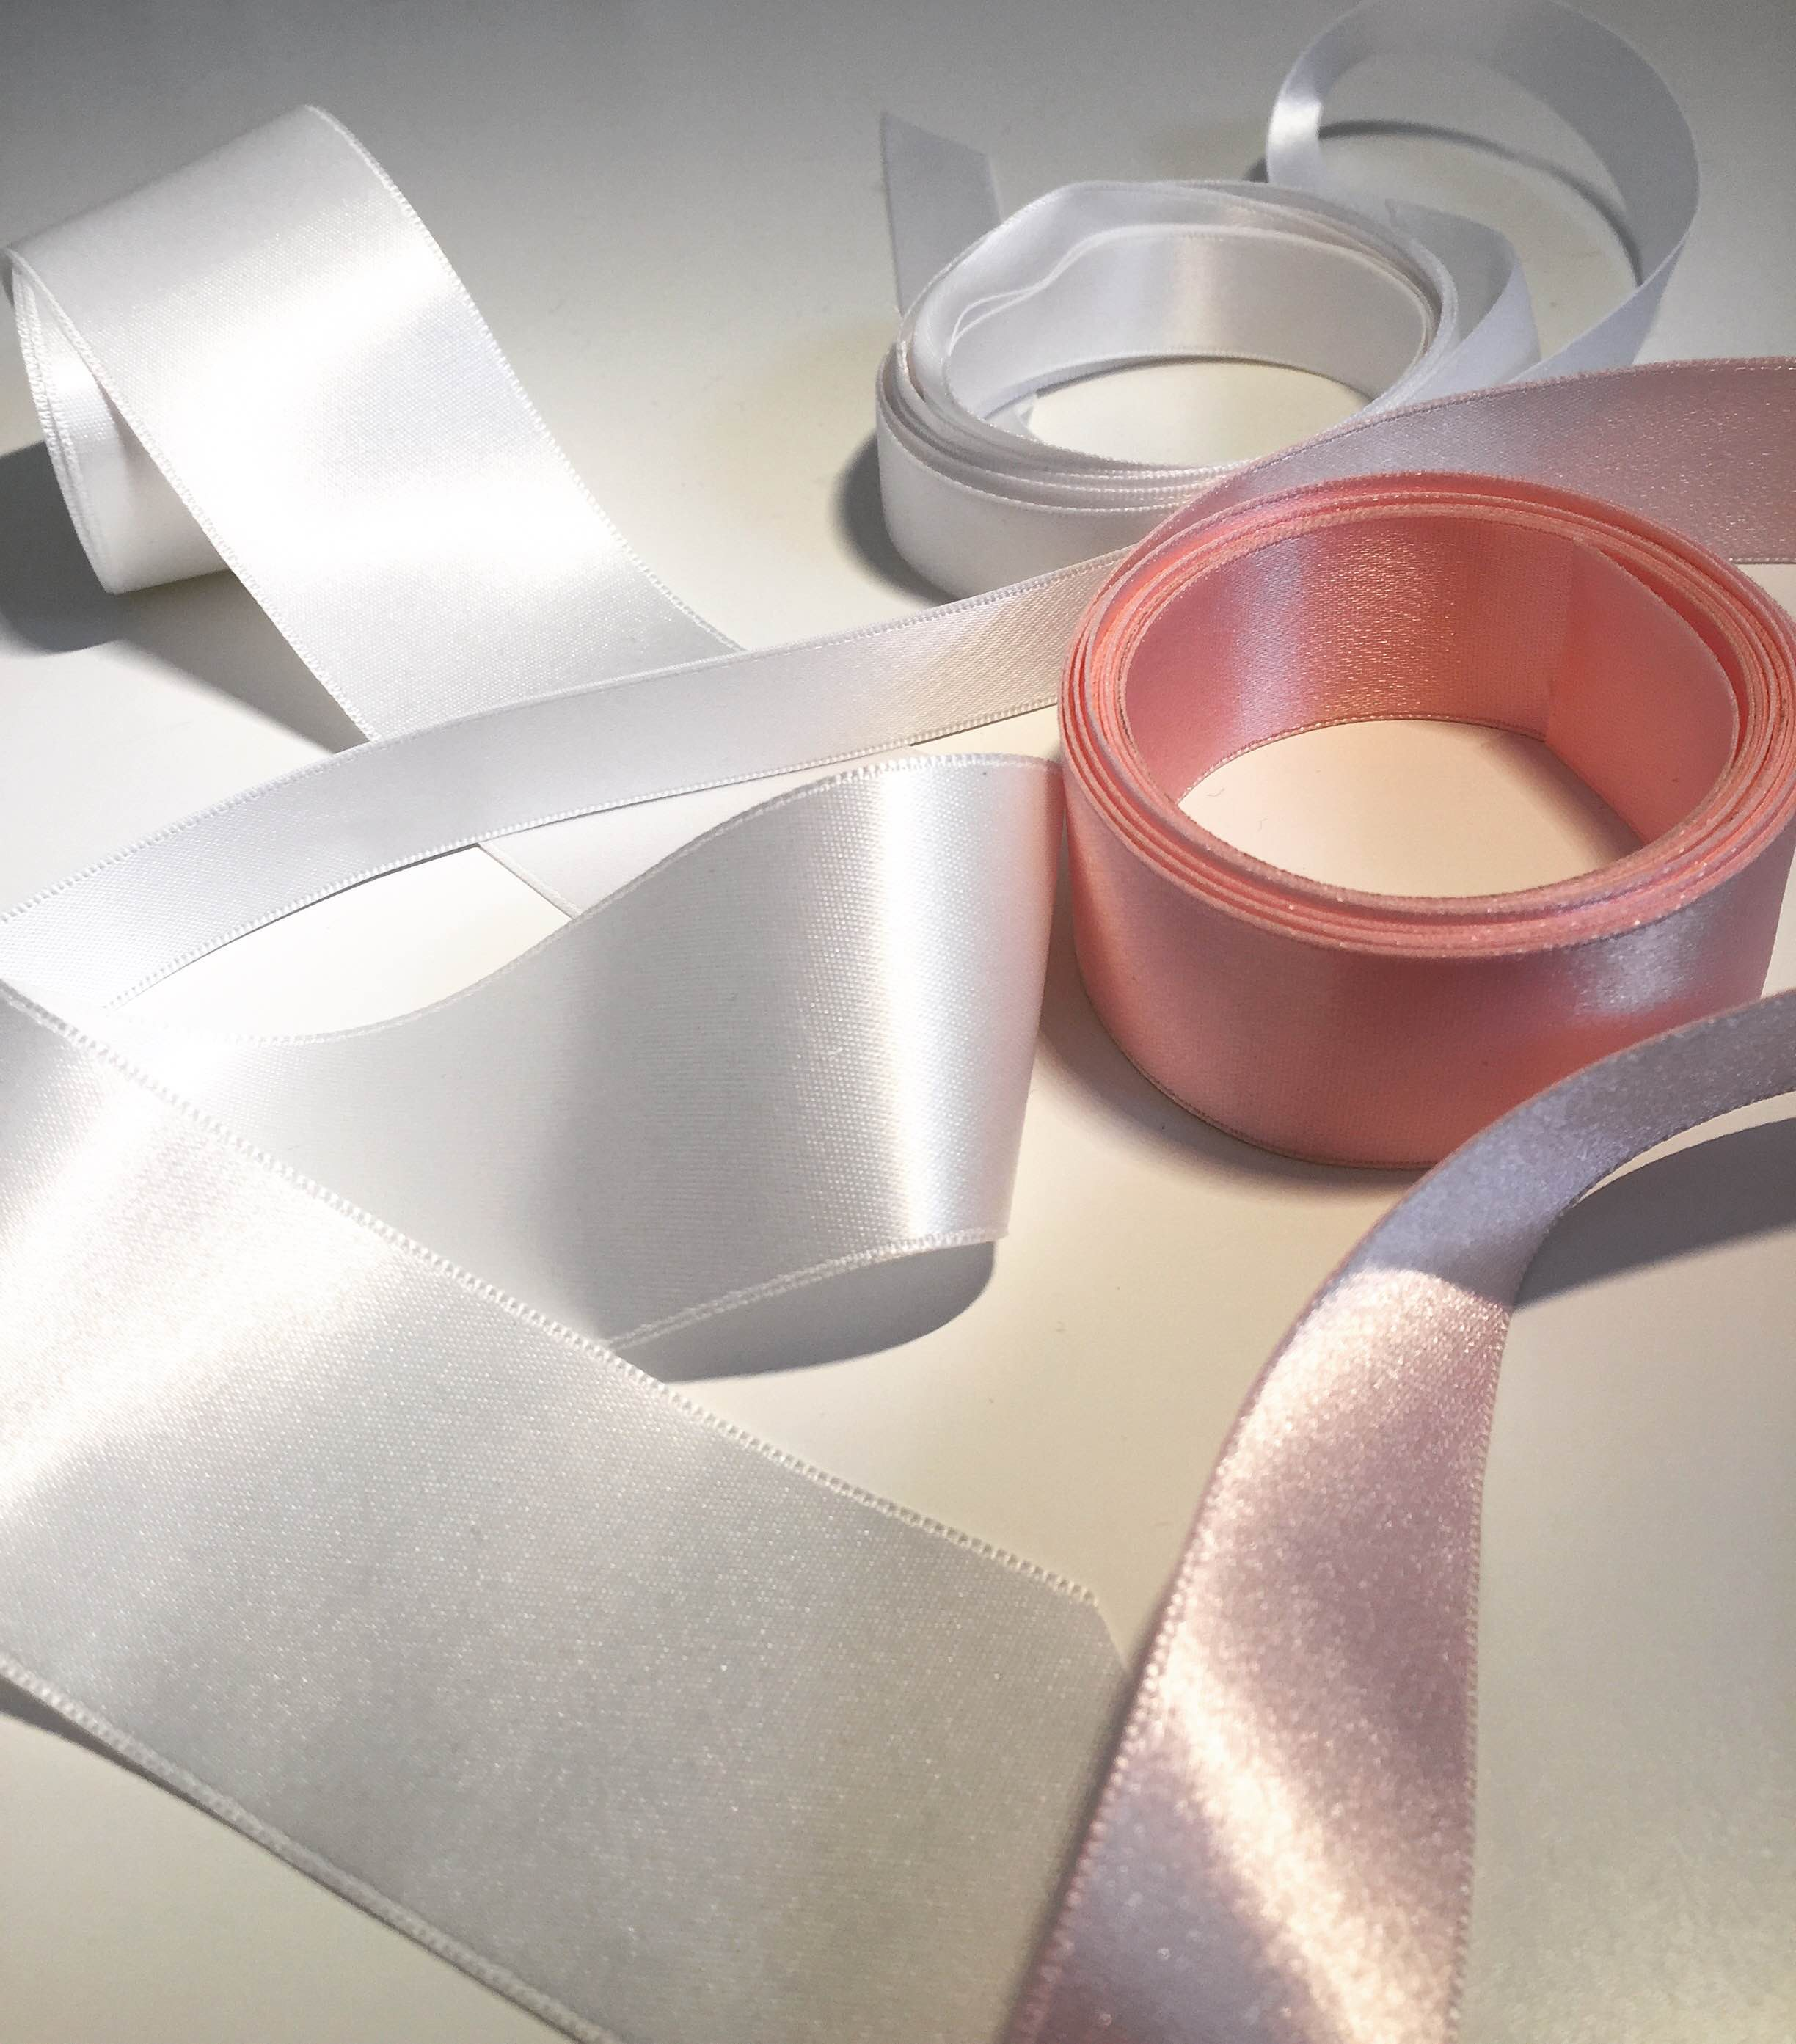 """Satin Ribbon is probably the most commonly thought of trim when it comes to bridal belts and sashes. Available in a ton of colors and variety of standard widths, usually between 1/8th"""" to 3 or 4"""", these can also come in a variety of qualities. There are thin, paper-y, stiff varieties that work better on a hat or an Easter basket, but a good bridal satin trim to search for or ask for is a double-faced polyester satin trim. Pictured here are a few of these, which are shiny on both sides, and slightly thicker than a basic satin trim. Thickness is especially important if you have a lace dress with a texture that might show through as bumps under a thinner satin. Also consider the width of the ribbon compared to the waistline on your dress and your bust size. A very thin trim may be the best way to bring waist definition on delicate dress or for a bride with a larger bust, while a more substantial dress or a bride with a smaller bust may benefit from a 2"""" wide trim. Much bigger than 2"""" is often tricky, because the shape of a waist usually curves in and out at about 1"""" above and below. Keeping an extra wide trim in place may require seams or darts to contour properly."""